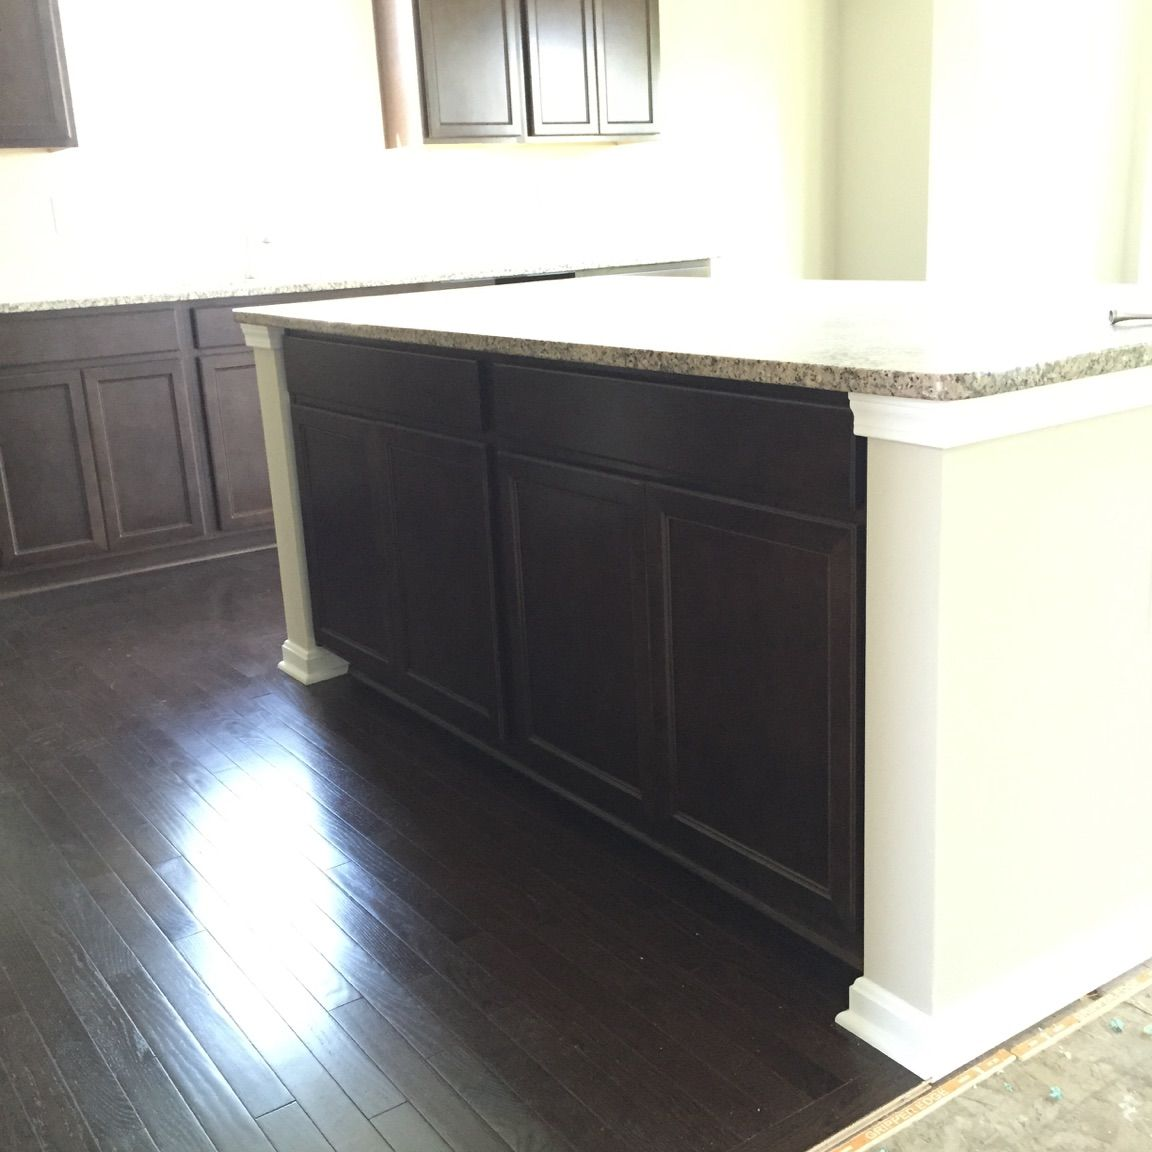 Standard Kitchen Island With Drywall Surrounding Cabinets Kitchen House Kitchen Cabinets